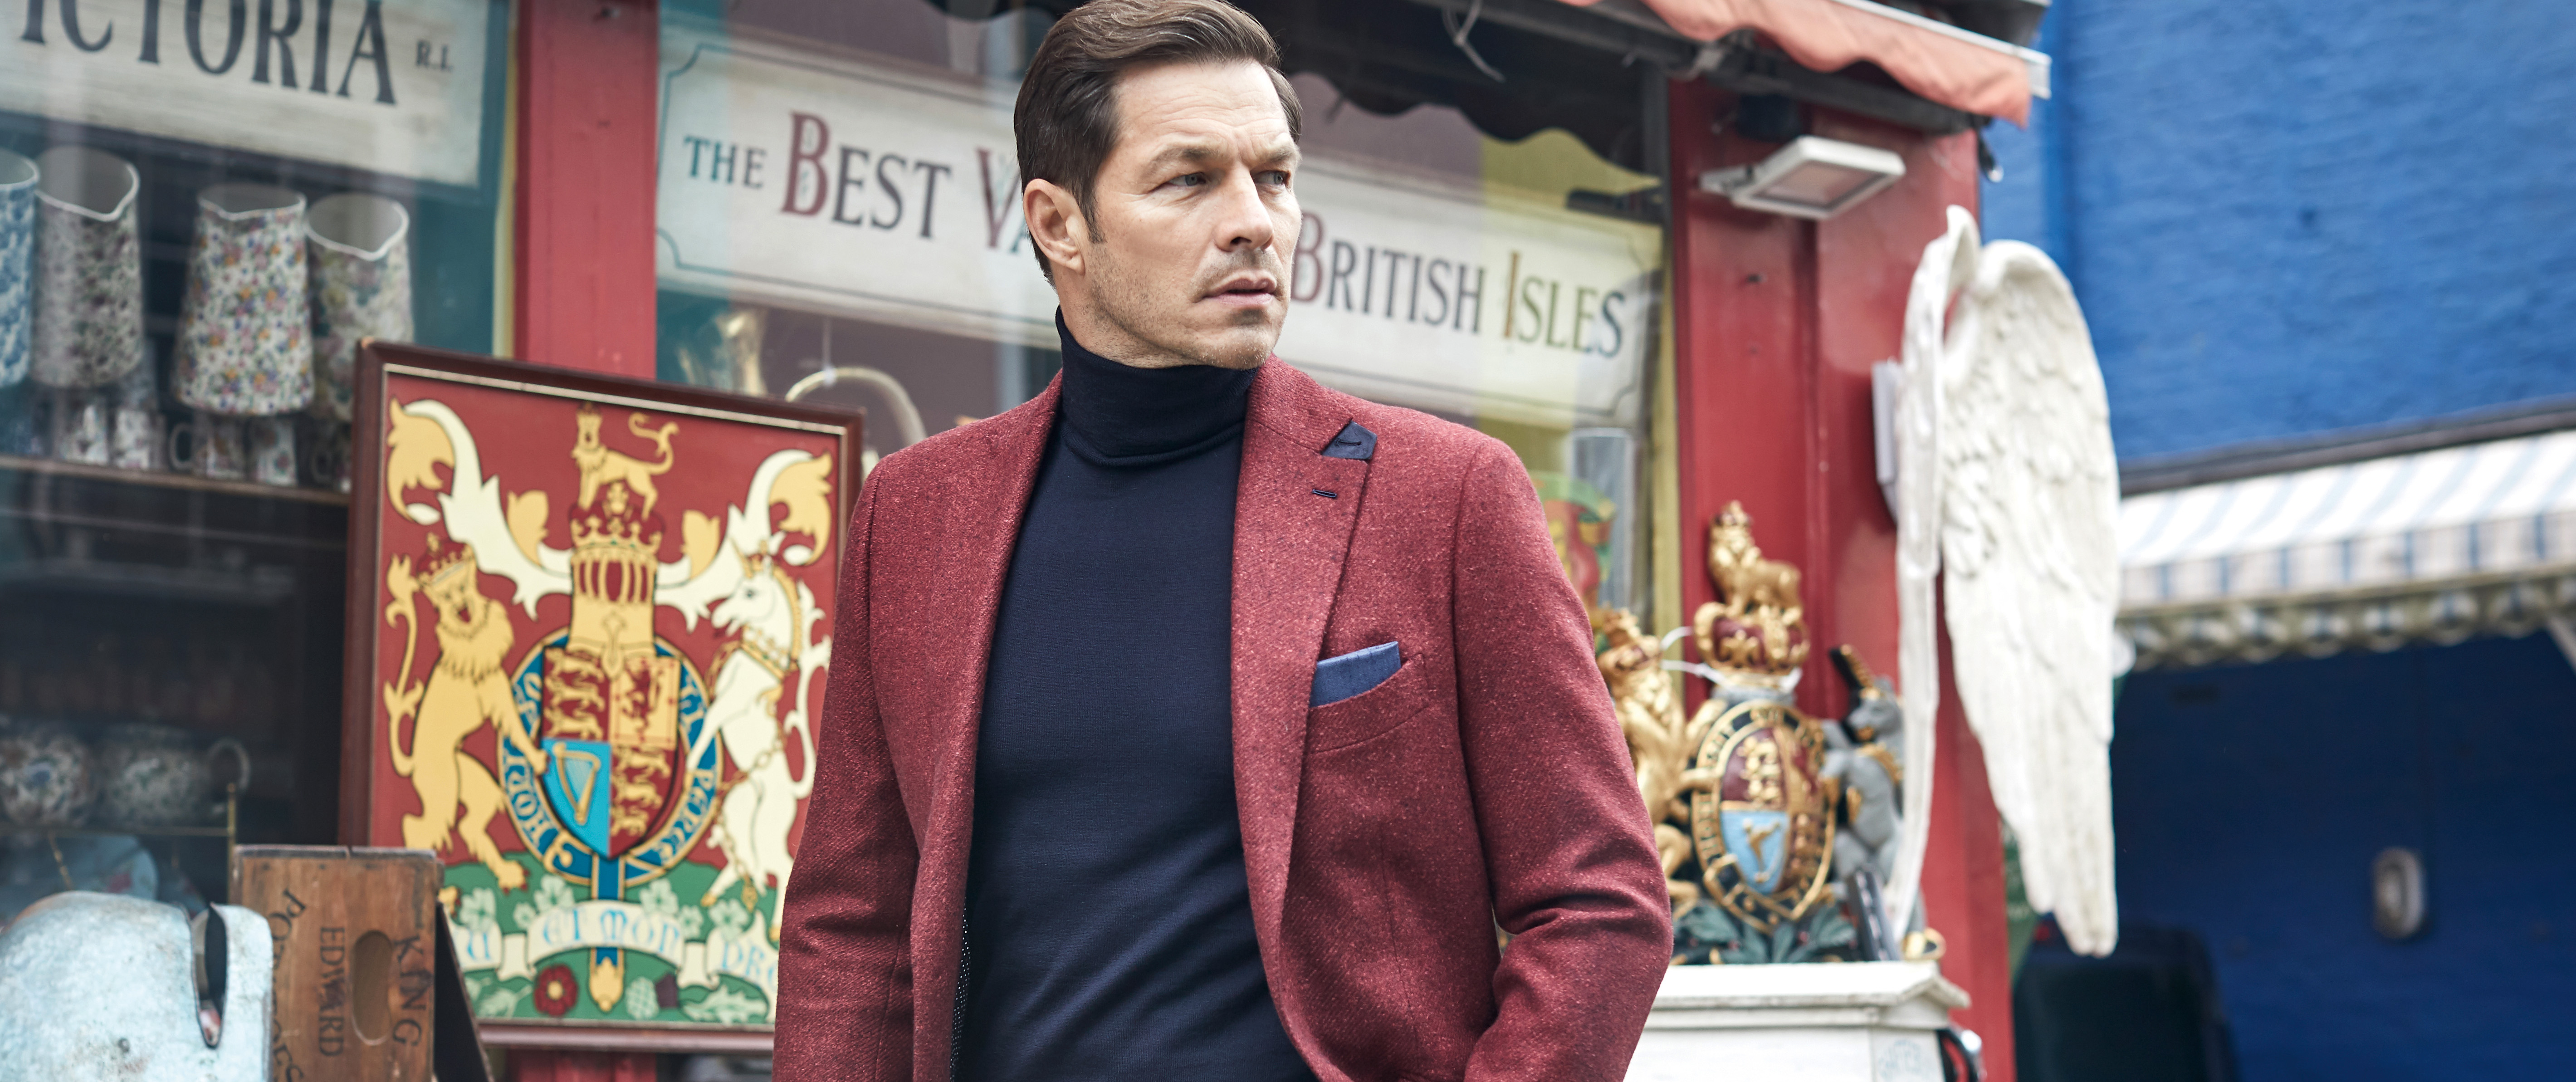 Here's how to style the classic turtleneck | Gentleman's Journal